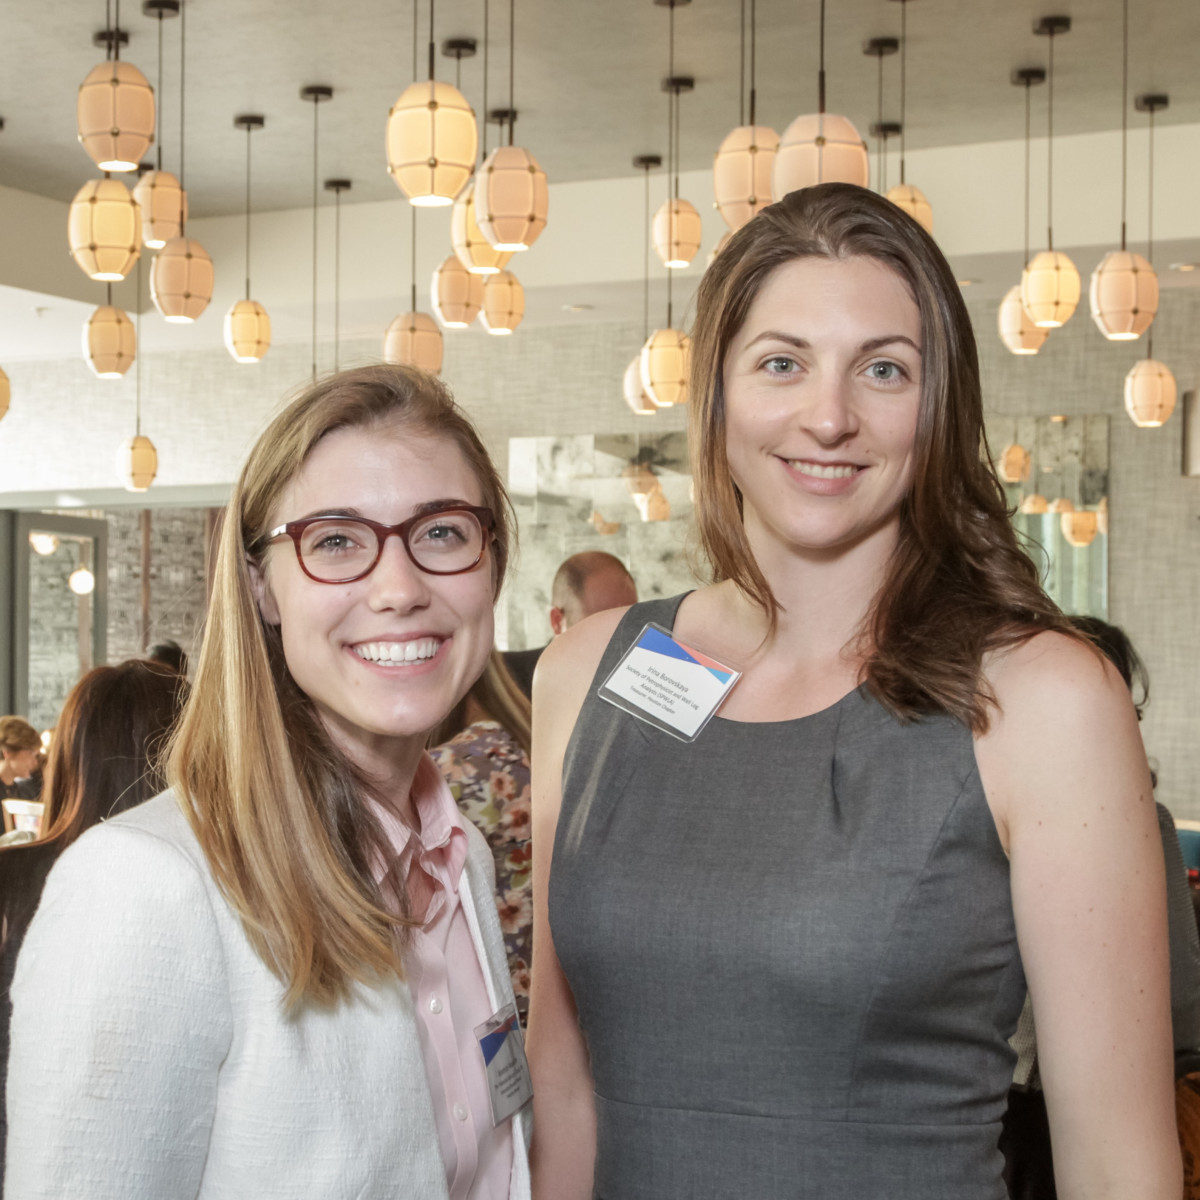 Ellevate Network breakfast 6/16 Beatrice Wallace, Irina Borovskaya